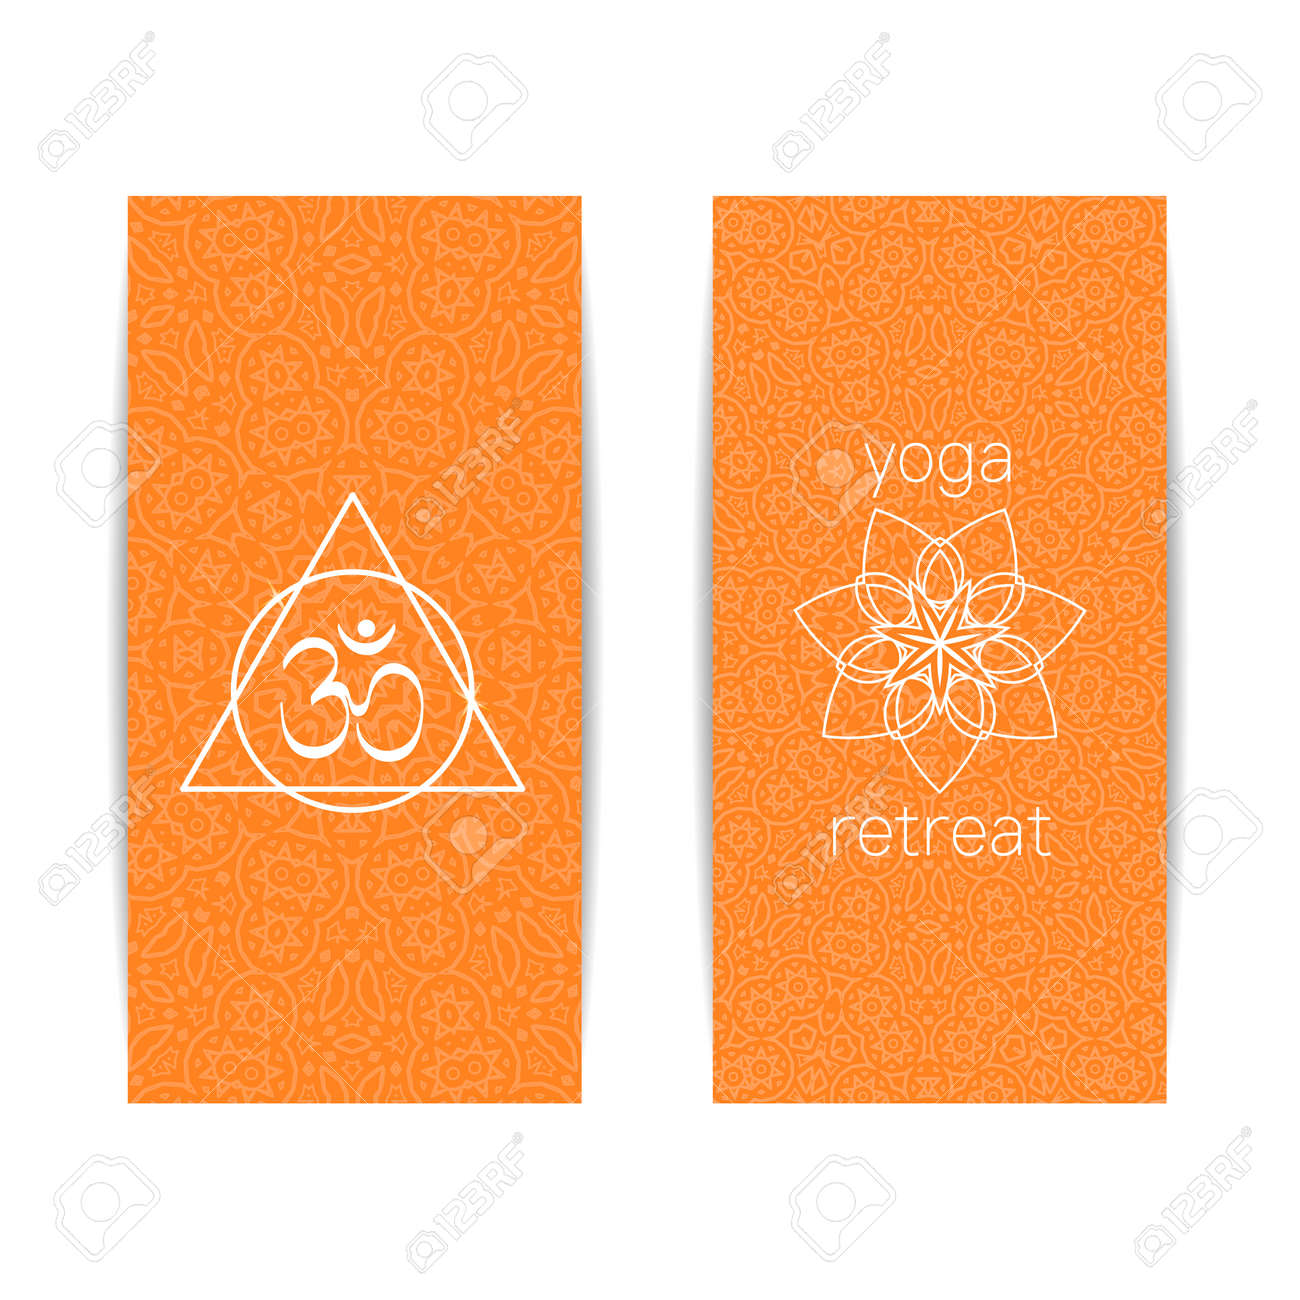 design for yoga banner studio spa classes poster magazine invitation gift certificate and presentation